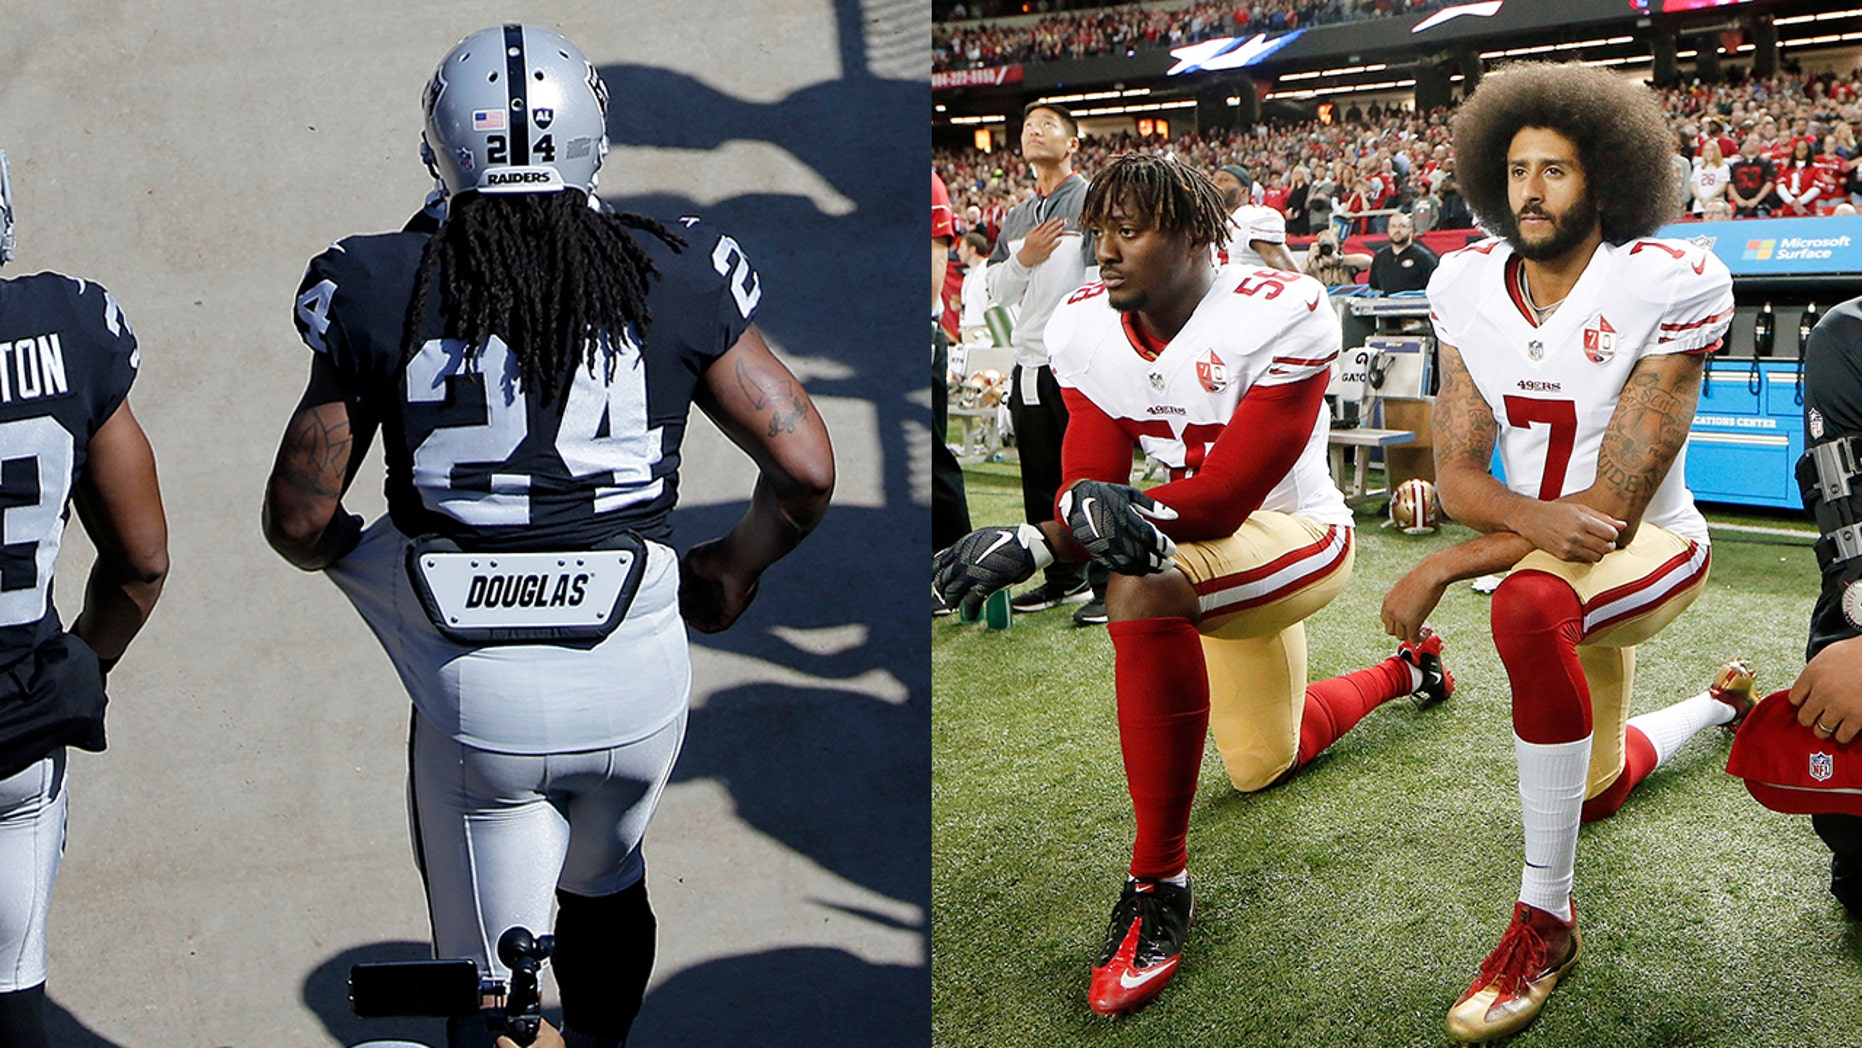 A bar in Missouri is taking heat for using the jerseys of Lynch (24) and Kaepernick (7) as doormats